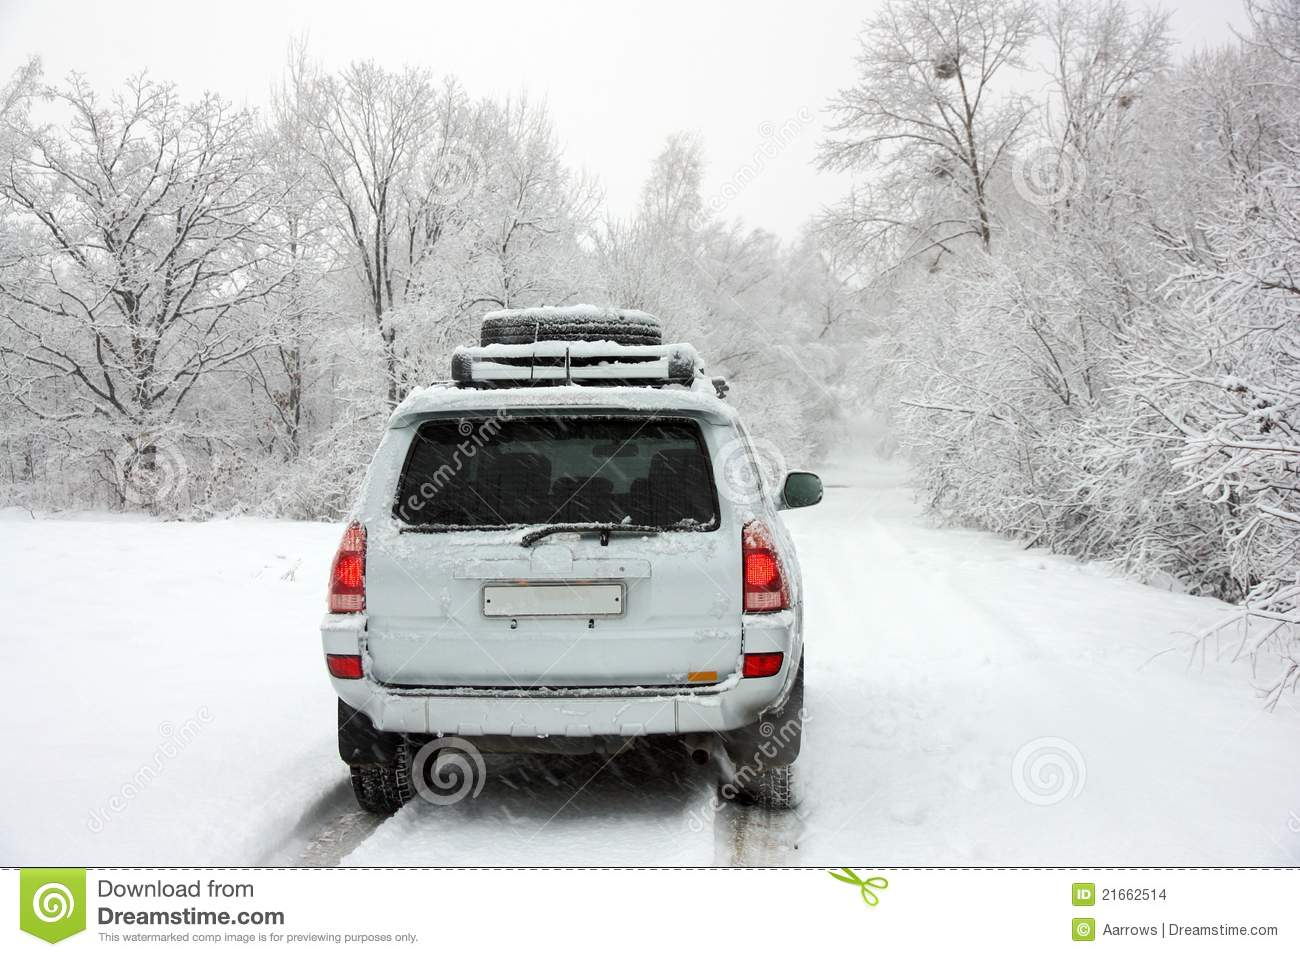 Snowy winter road behind an unrecognizable car